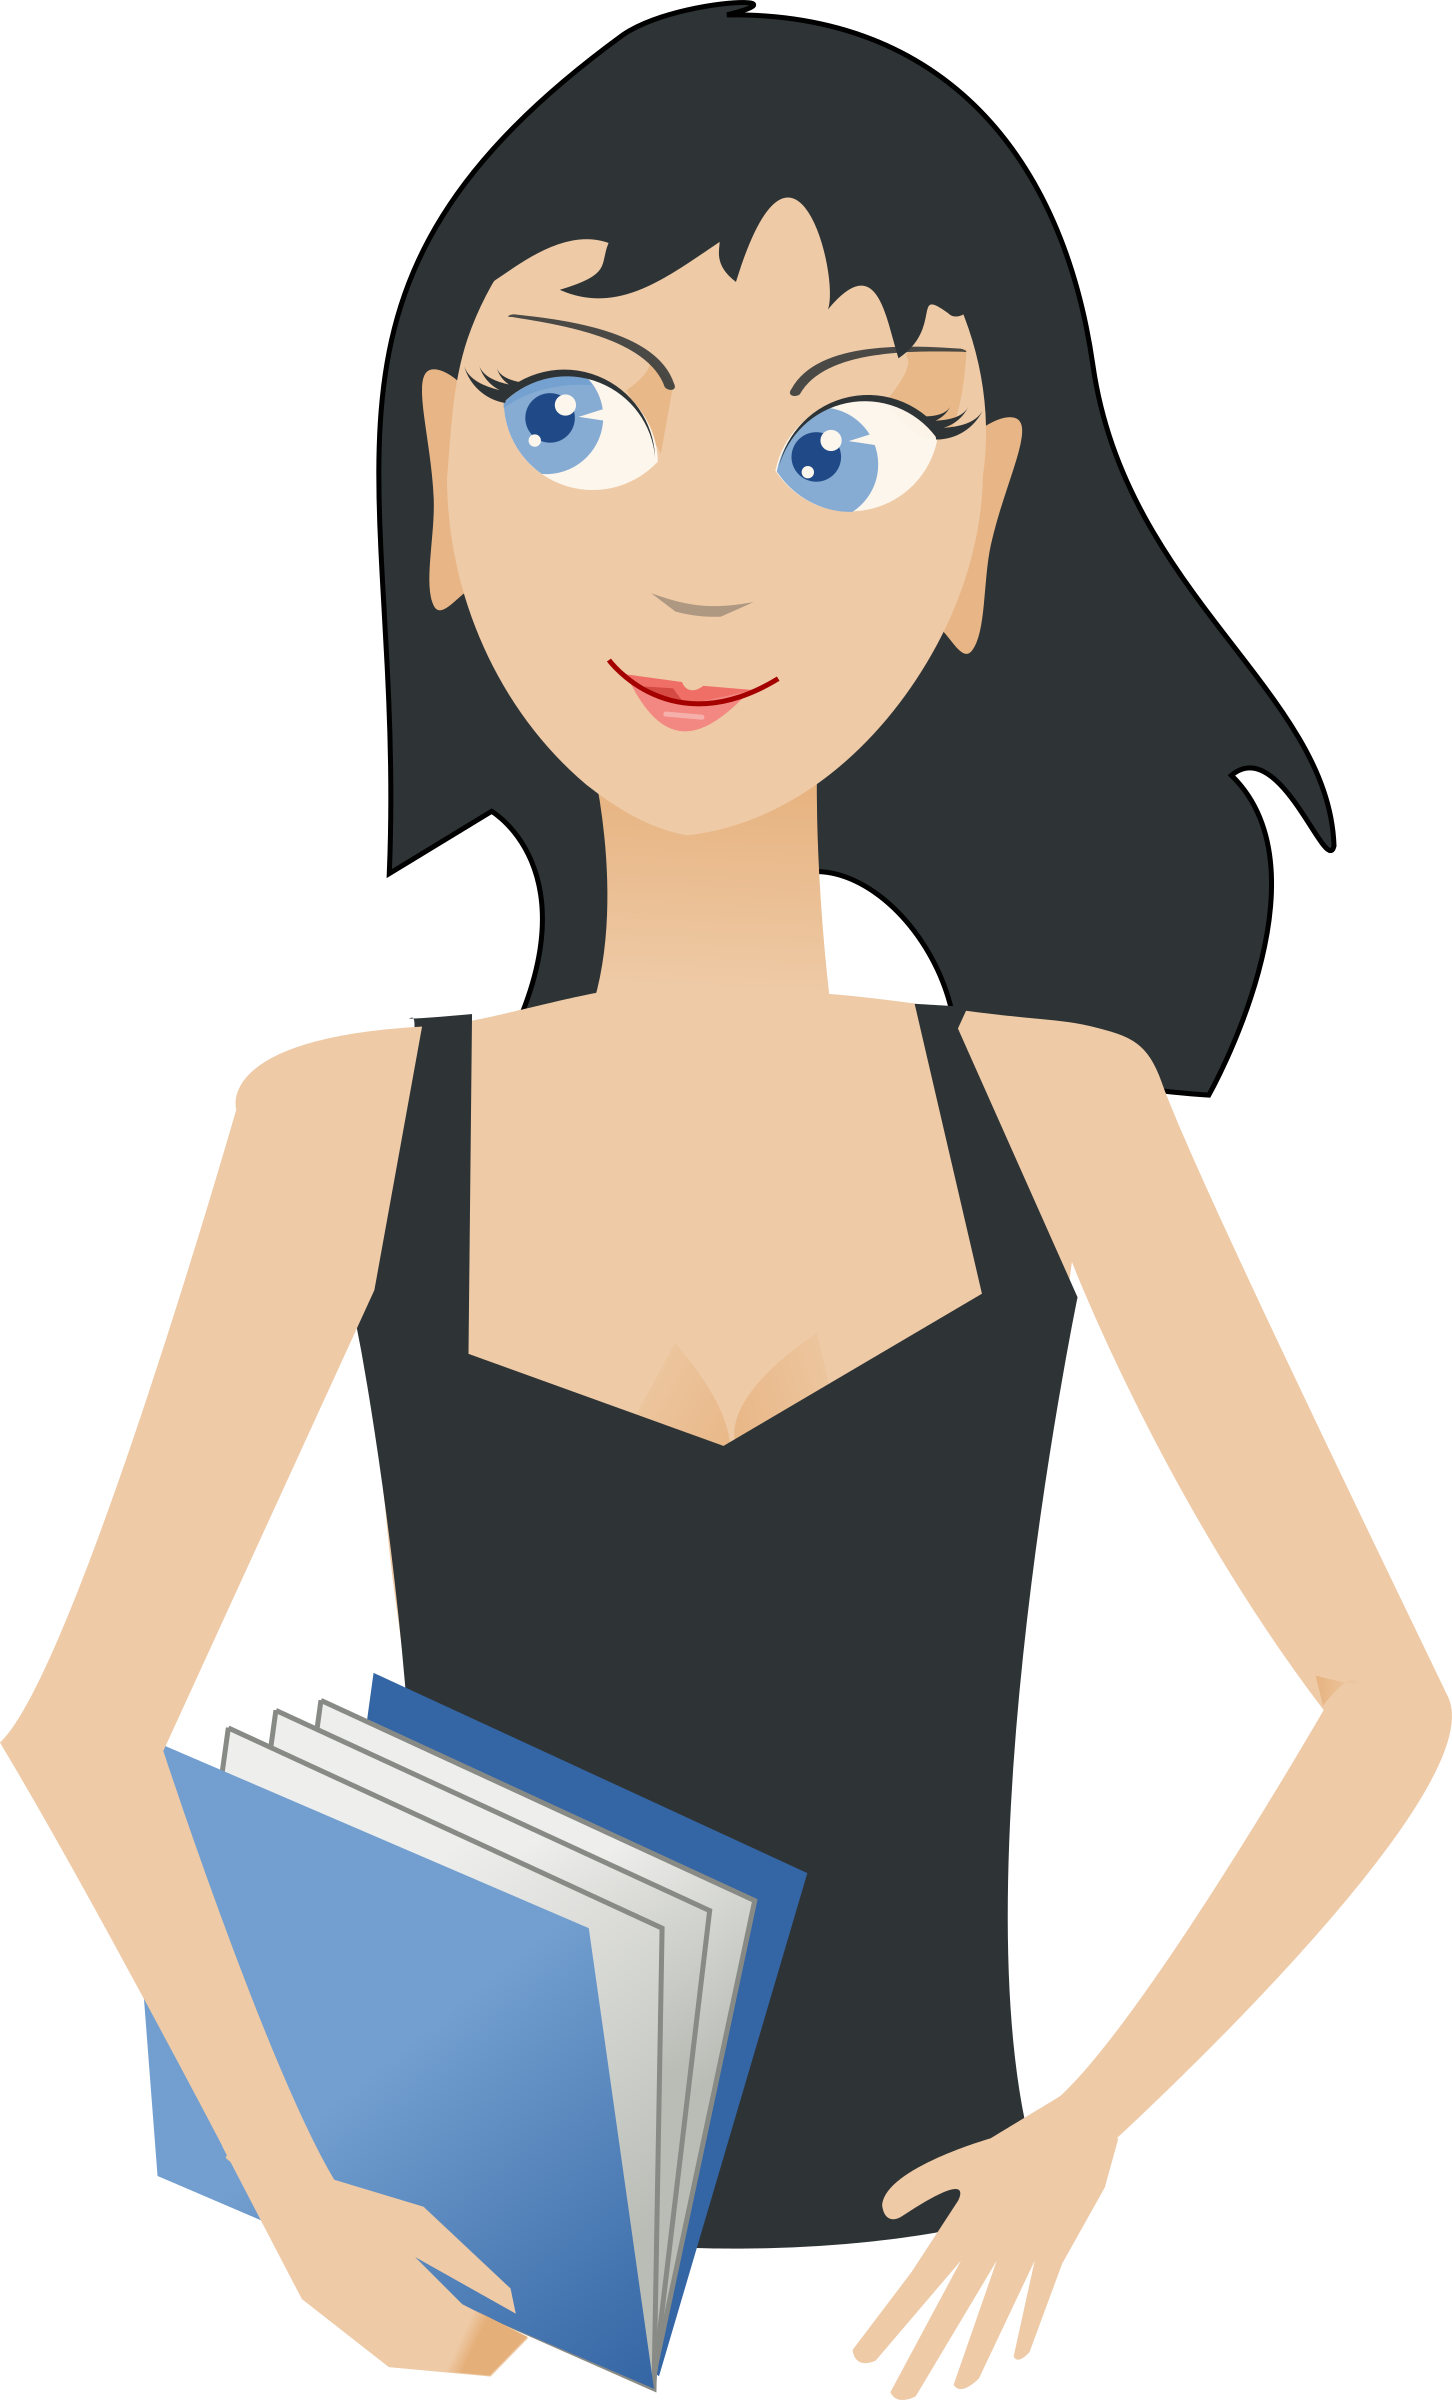 Pathway clipart university student Student Clipart with girl Clipart